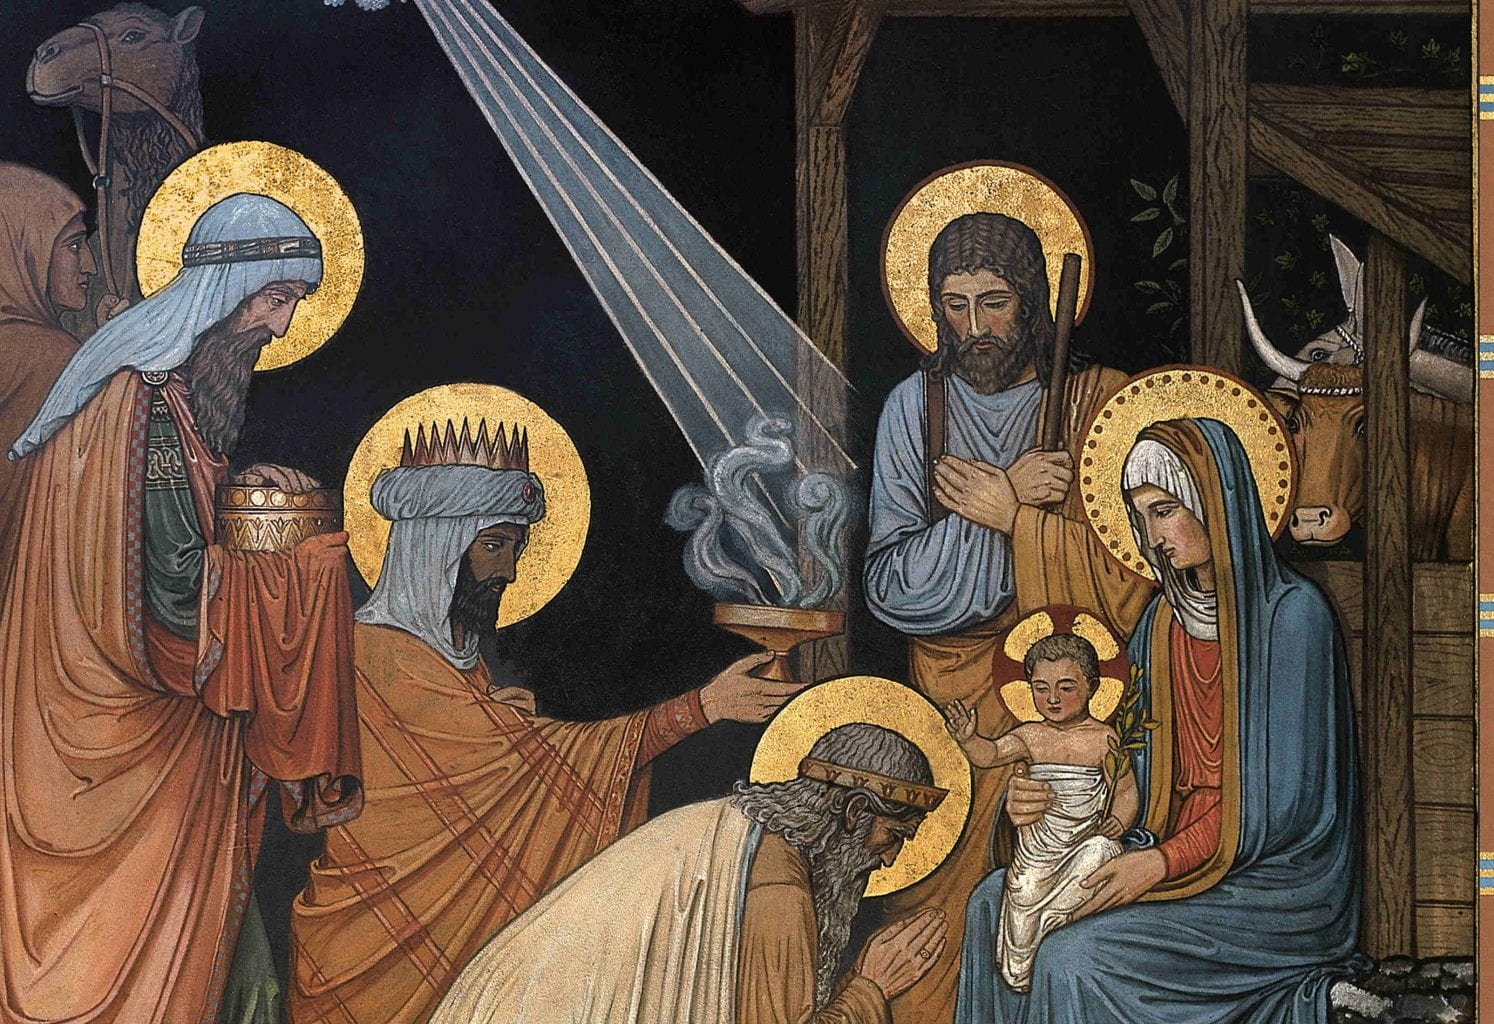 deeper meaning christmas swaddling clothes manger magi significado navidad nativity natale ox ass birth Jesus Christ Bethlehem